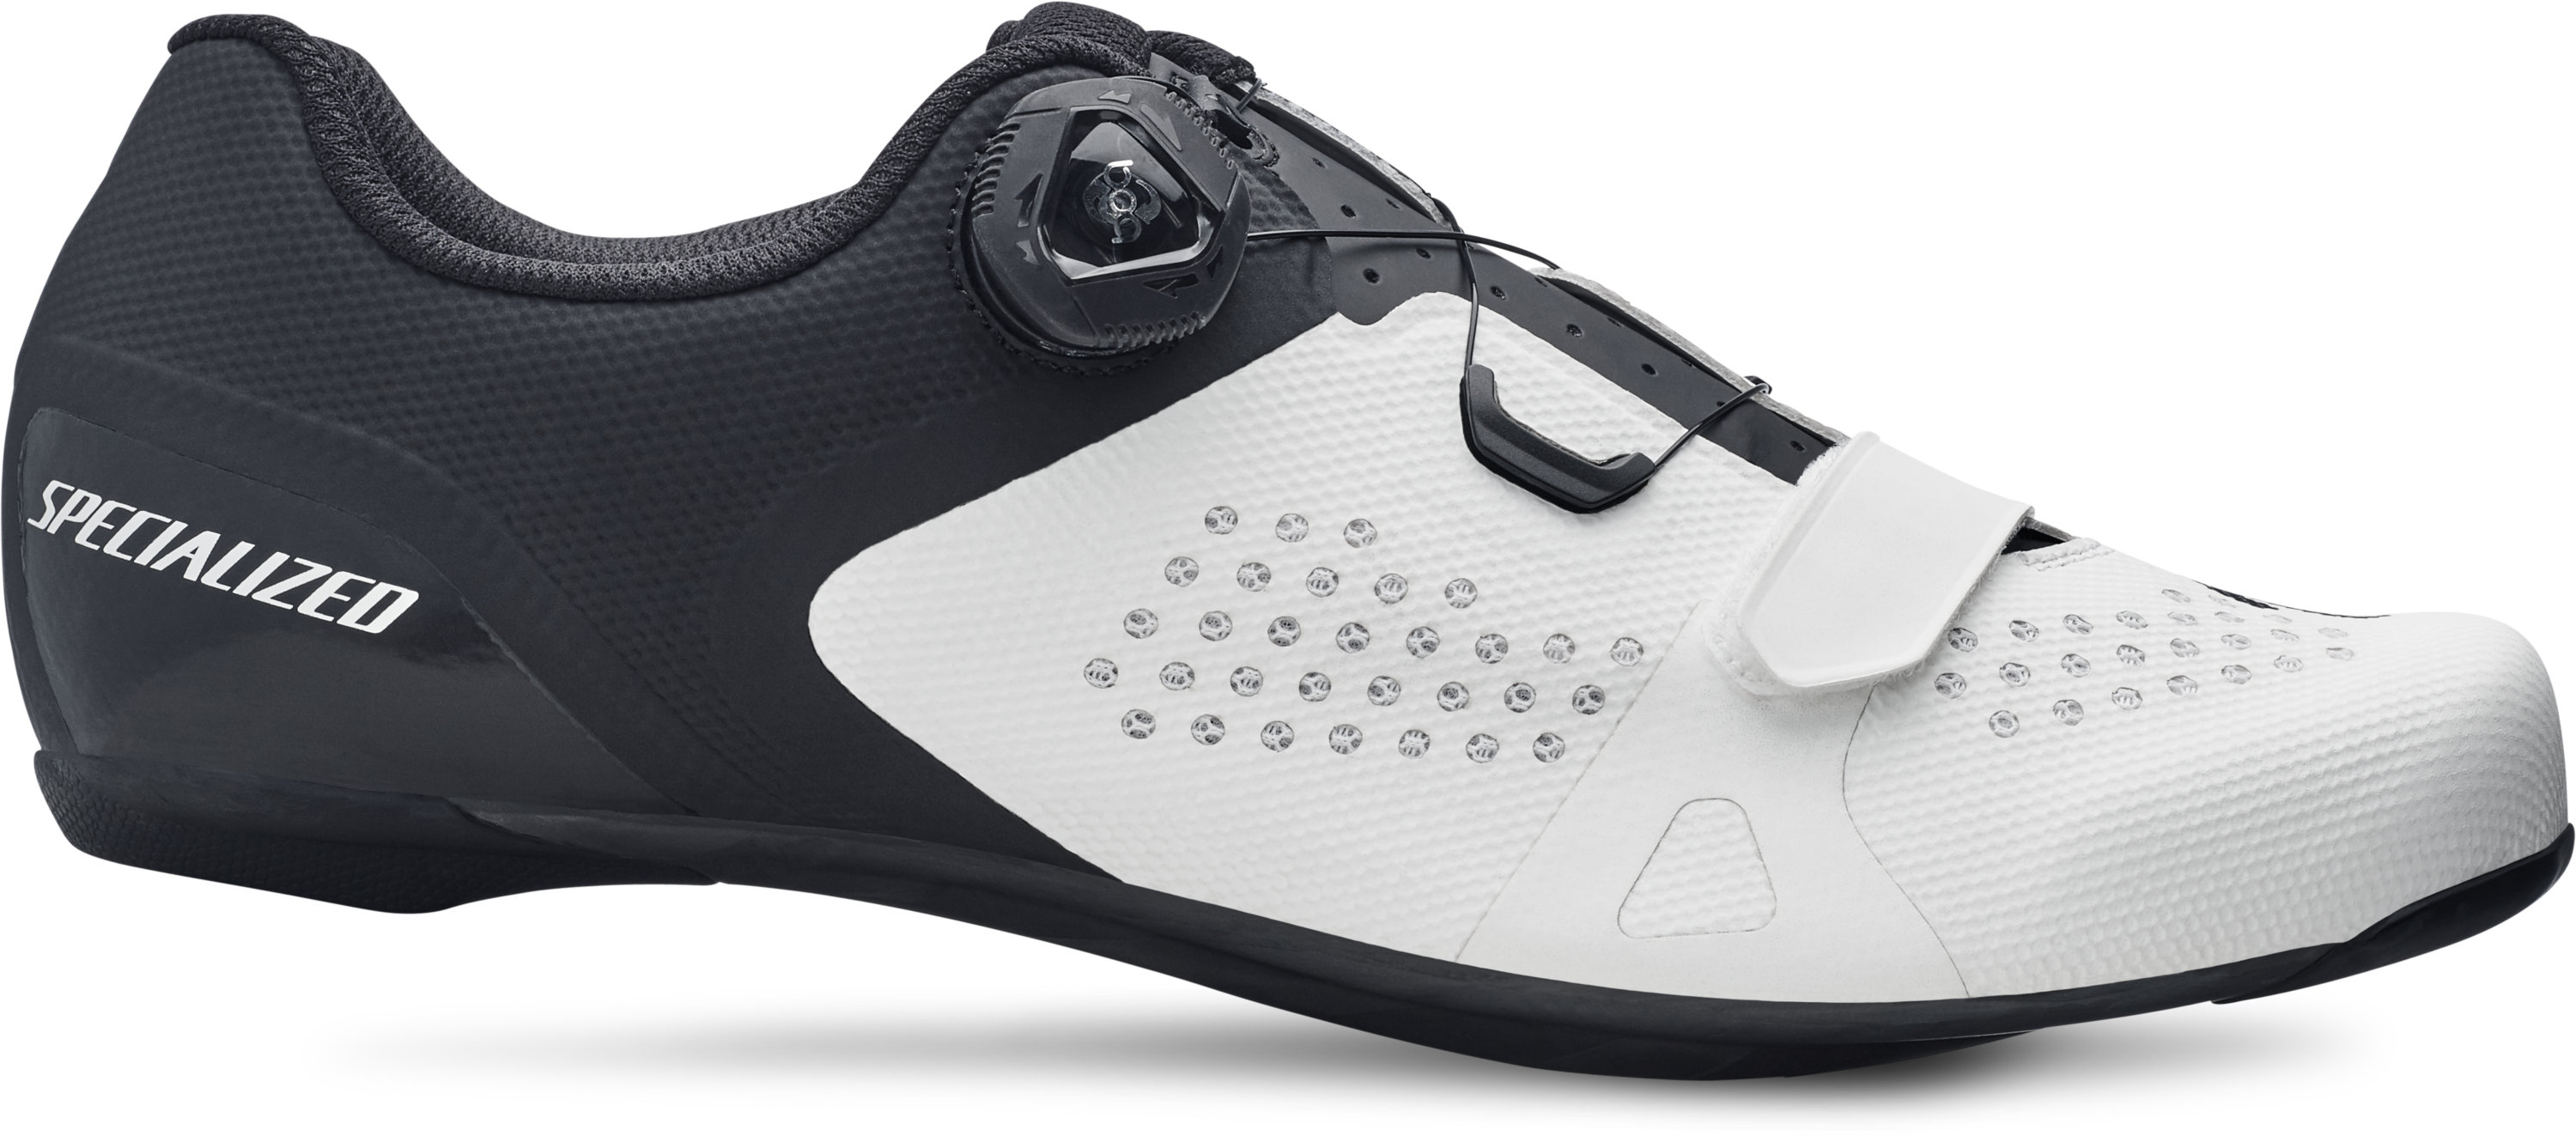 2021 Specialized Torch 2.0 Road Shoes